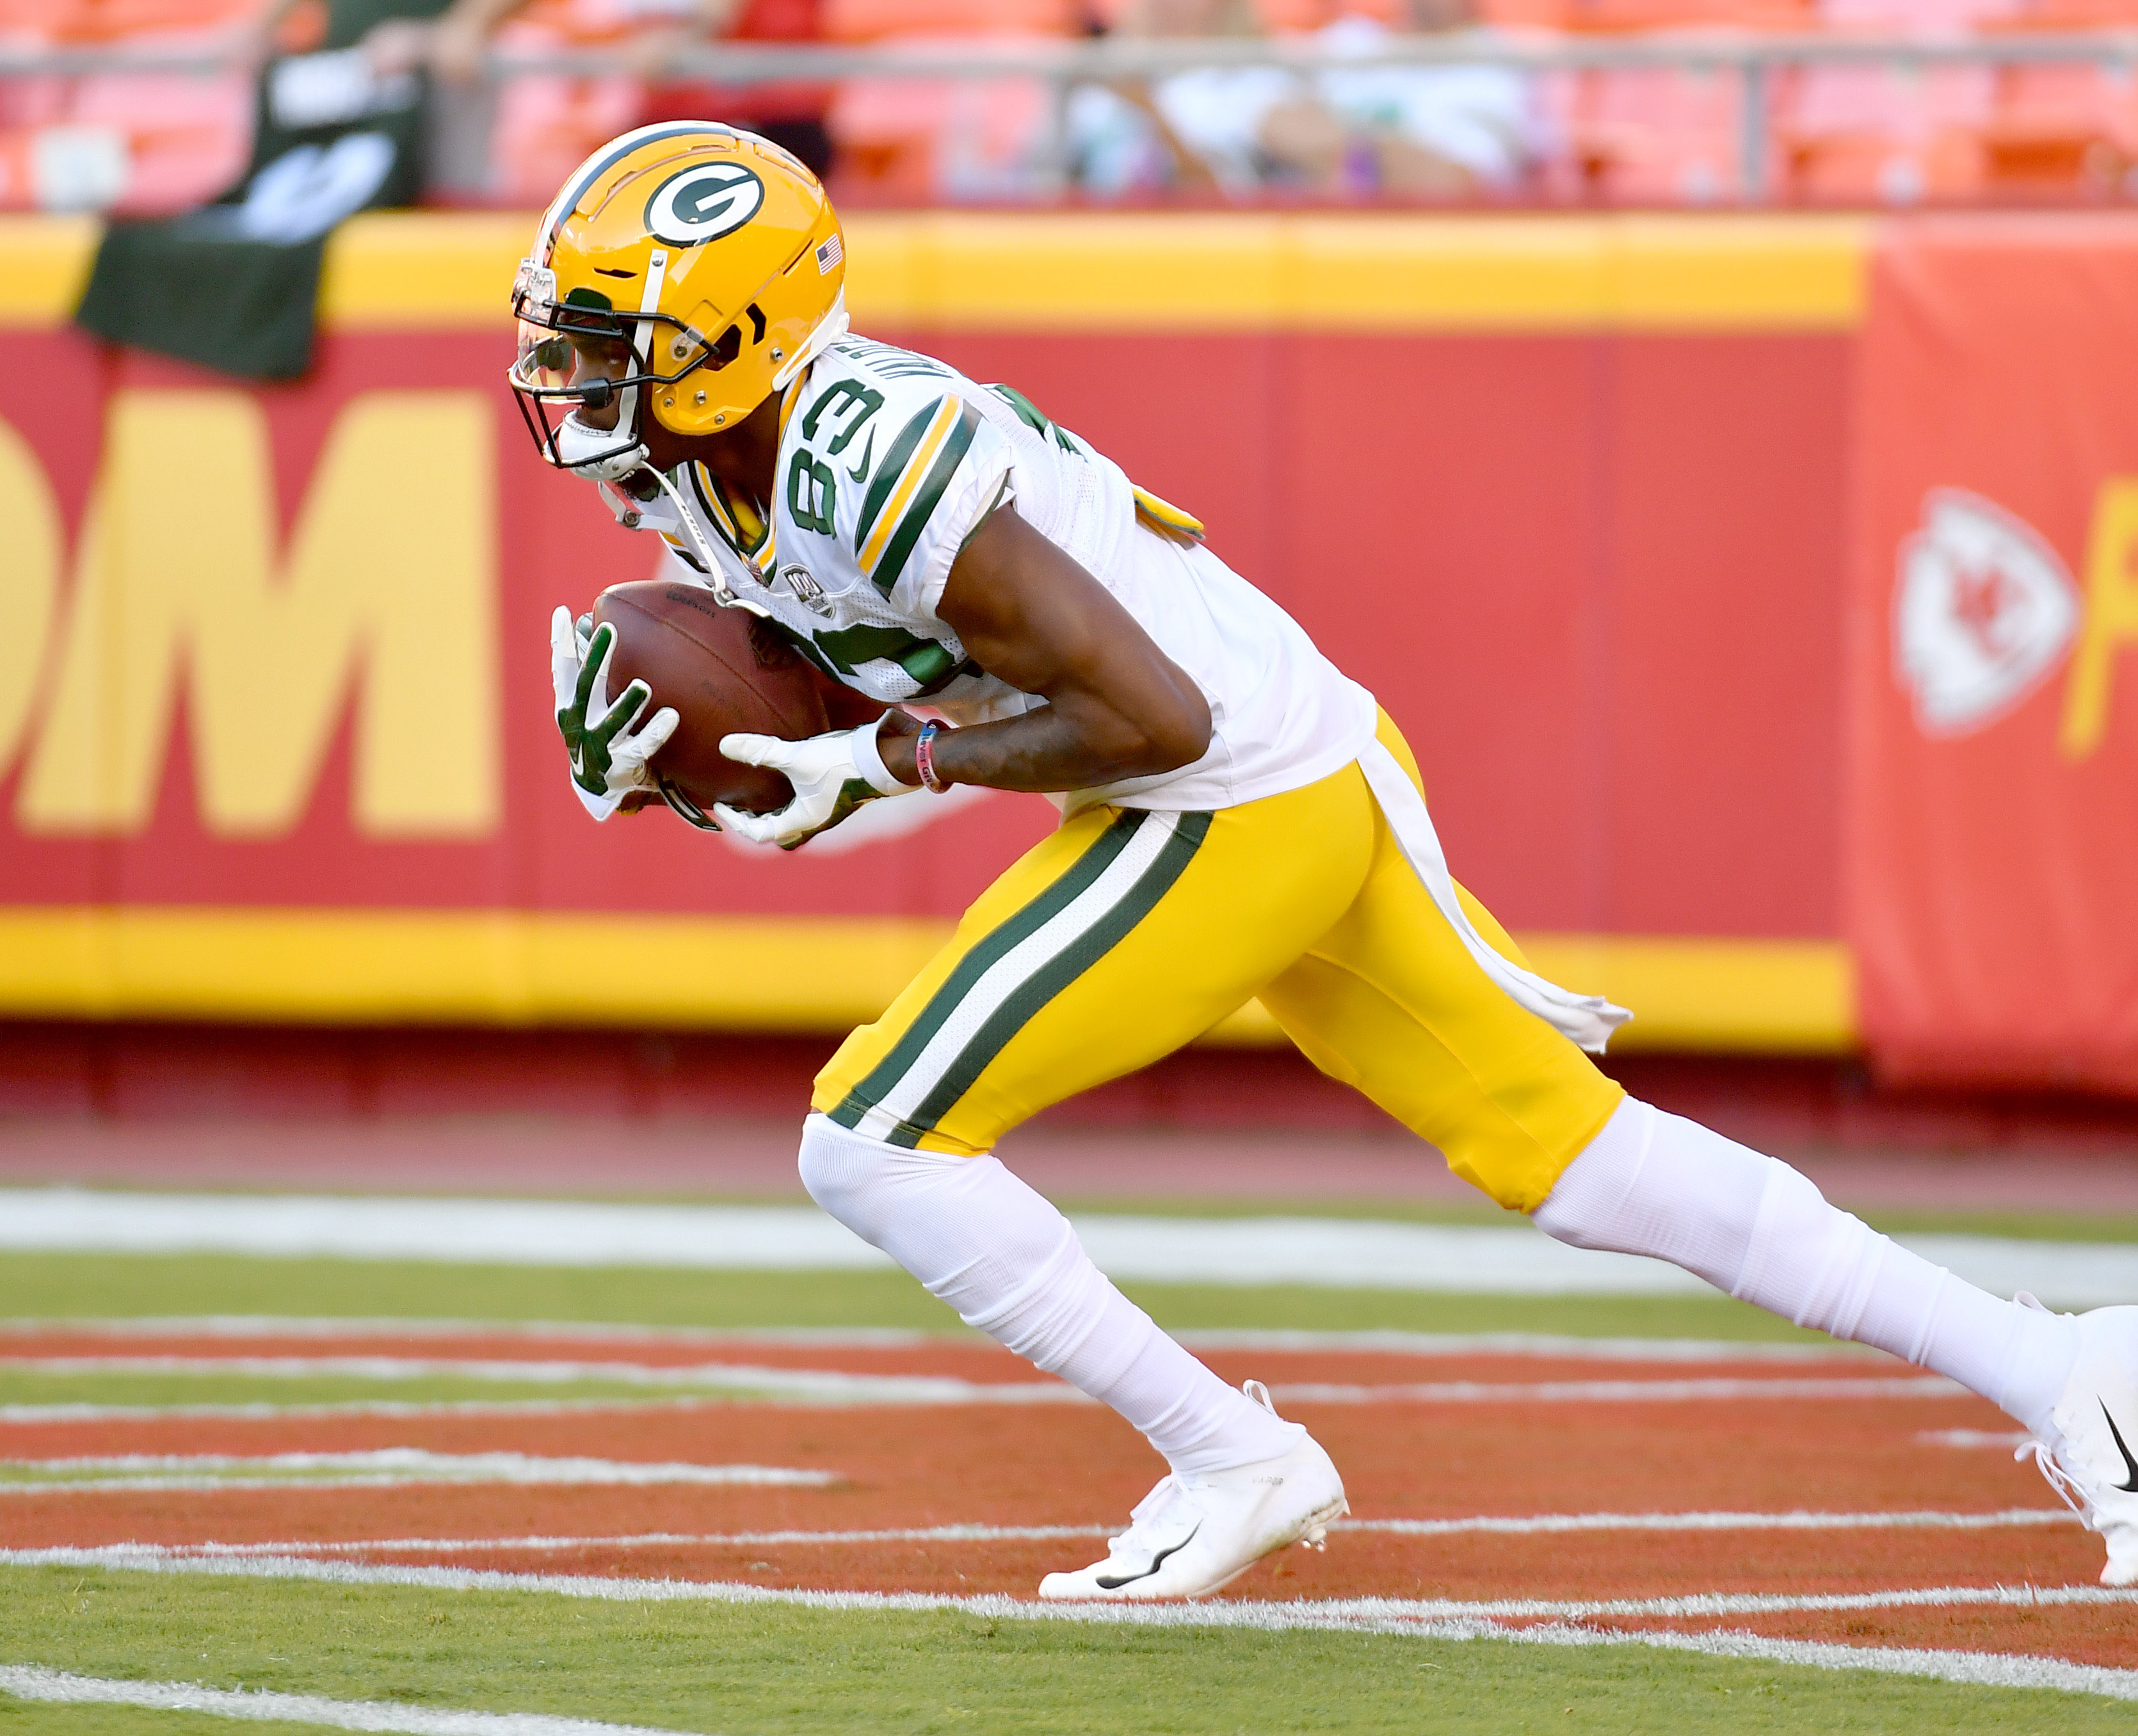 Packers Hope Young Receivers Are Ready for the Big Stage